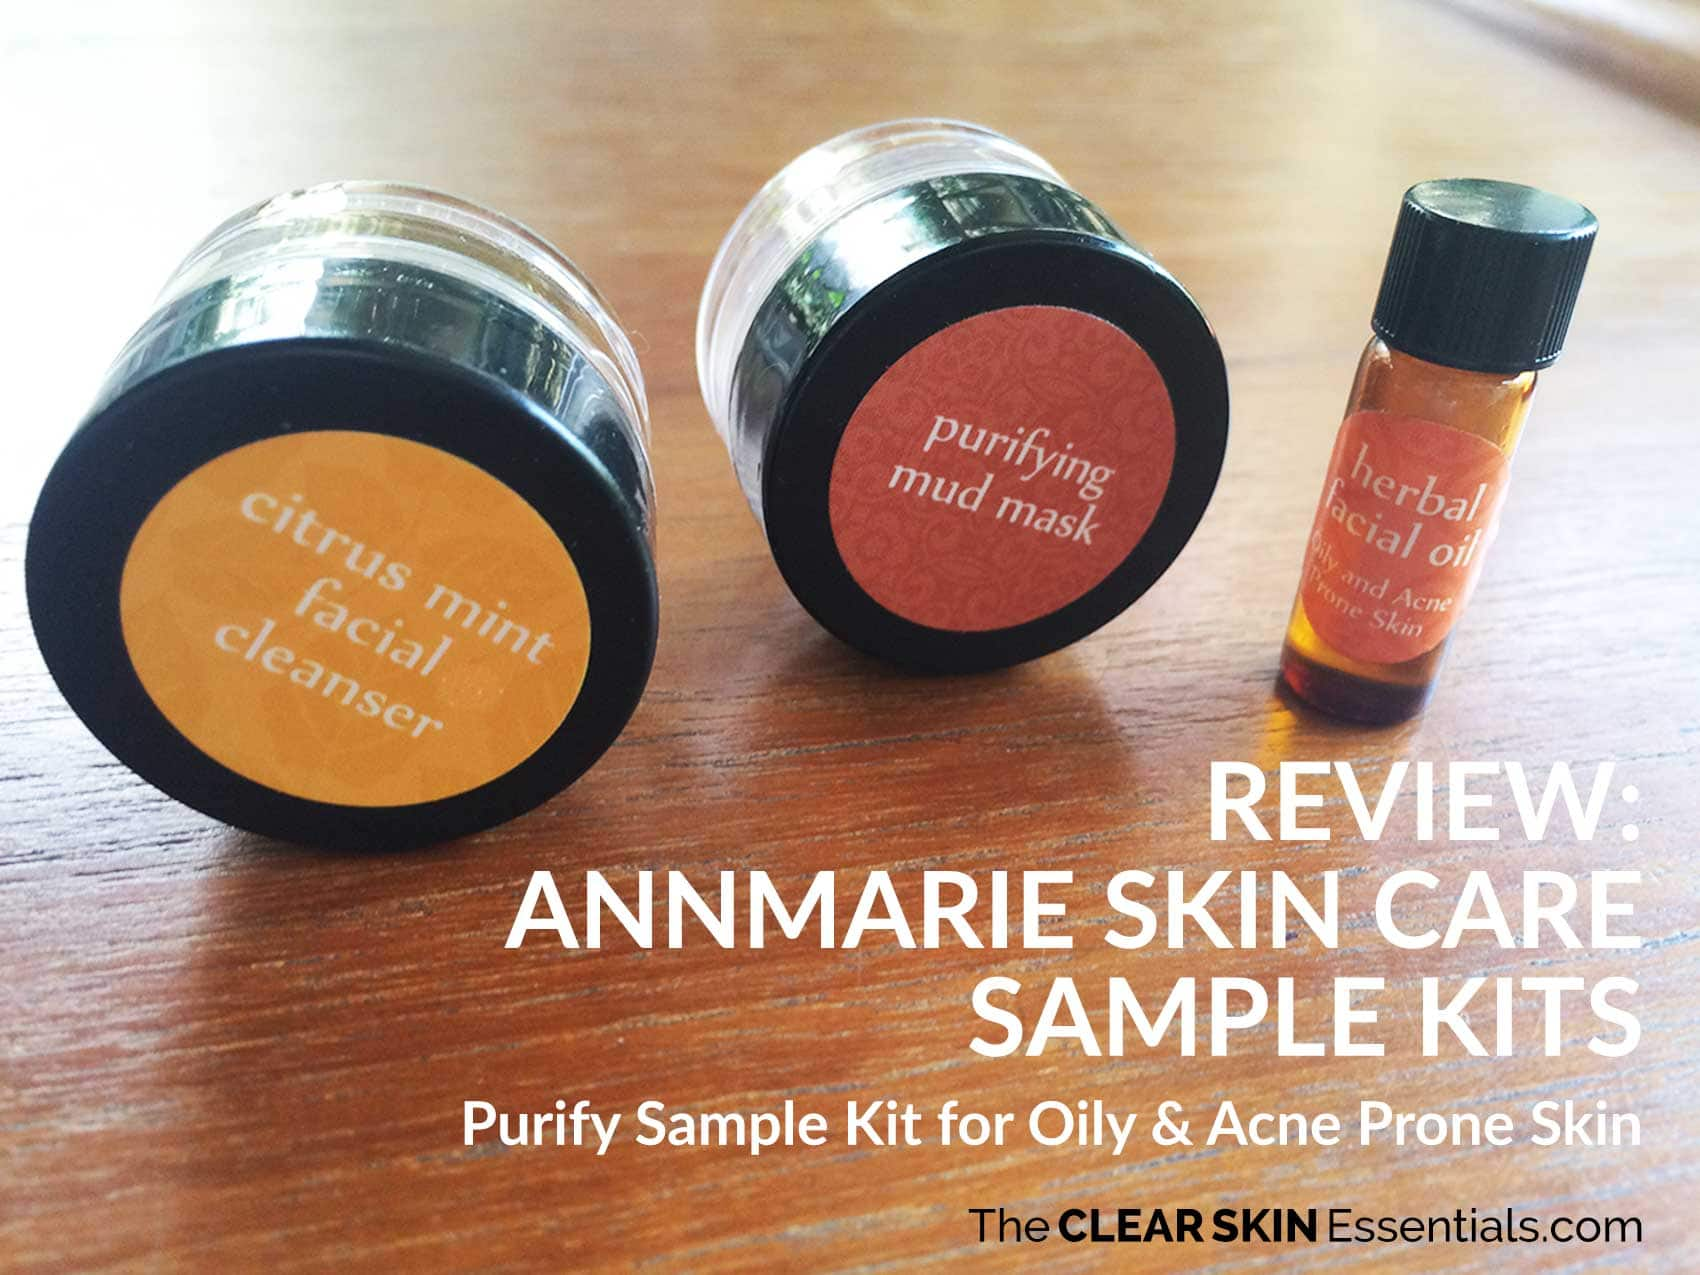 Review of Annmarie Skin Care Sample Kits featuring Citrus Mint Facial Cleanser, Purifying Mud Mask, Herbal facial Oil for Oily And Acne Prone Skin.